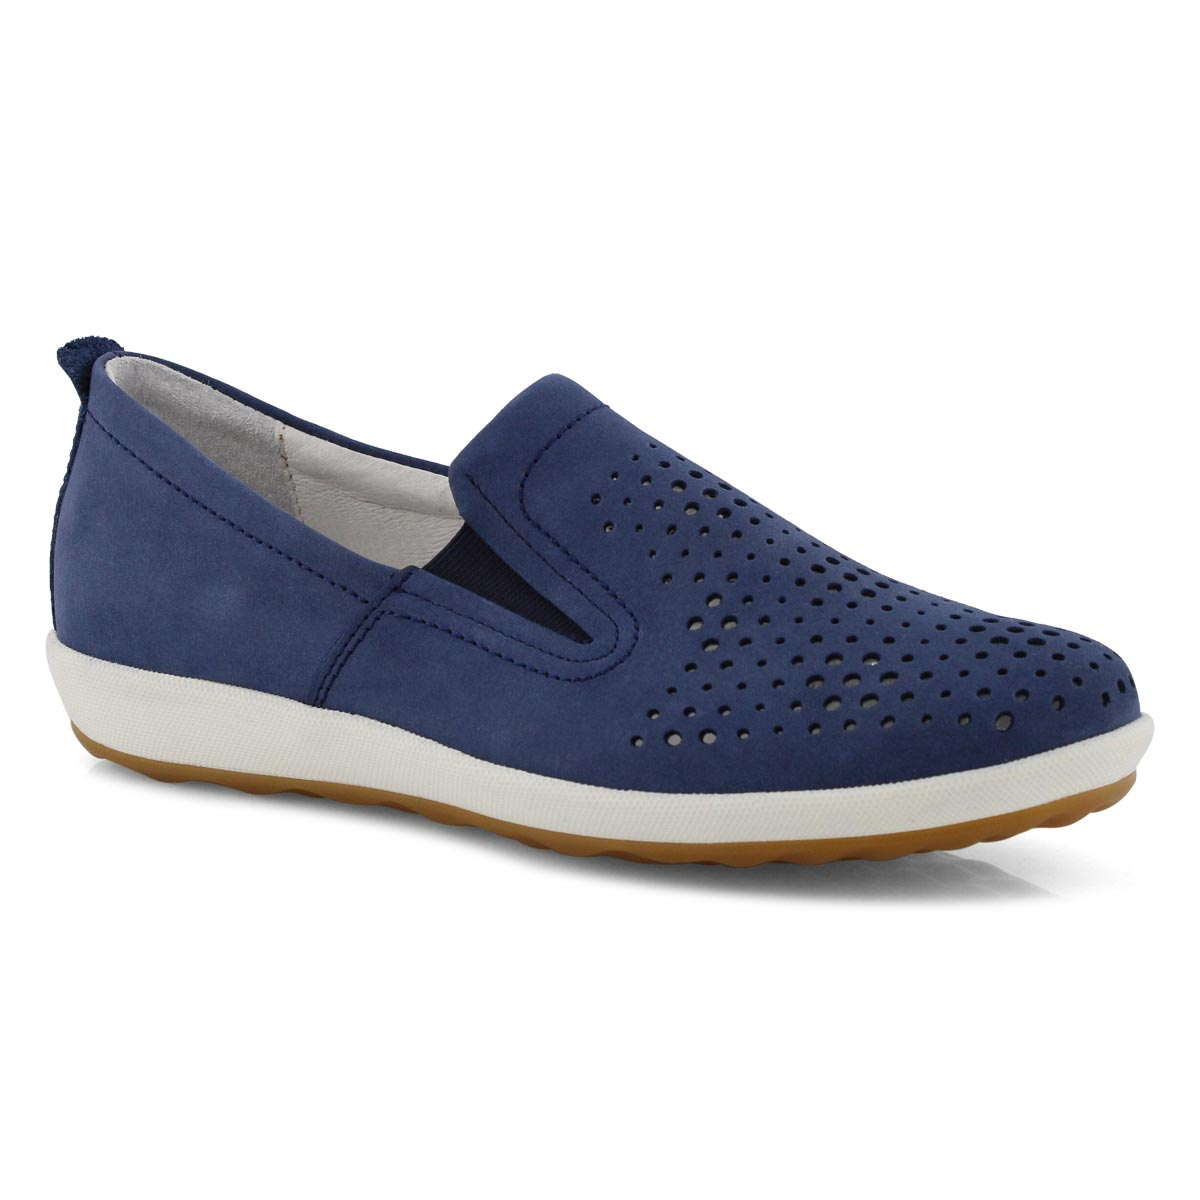 Lds Viola 07 blue casual slip on shoes